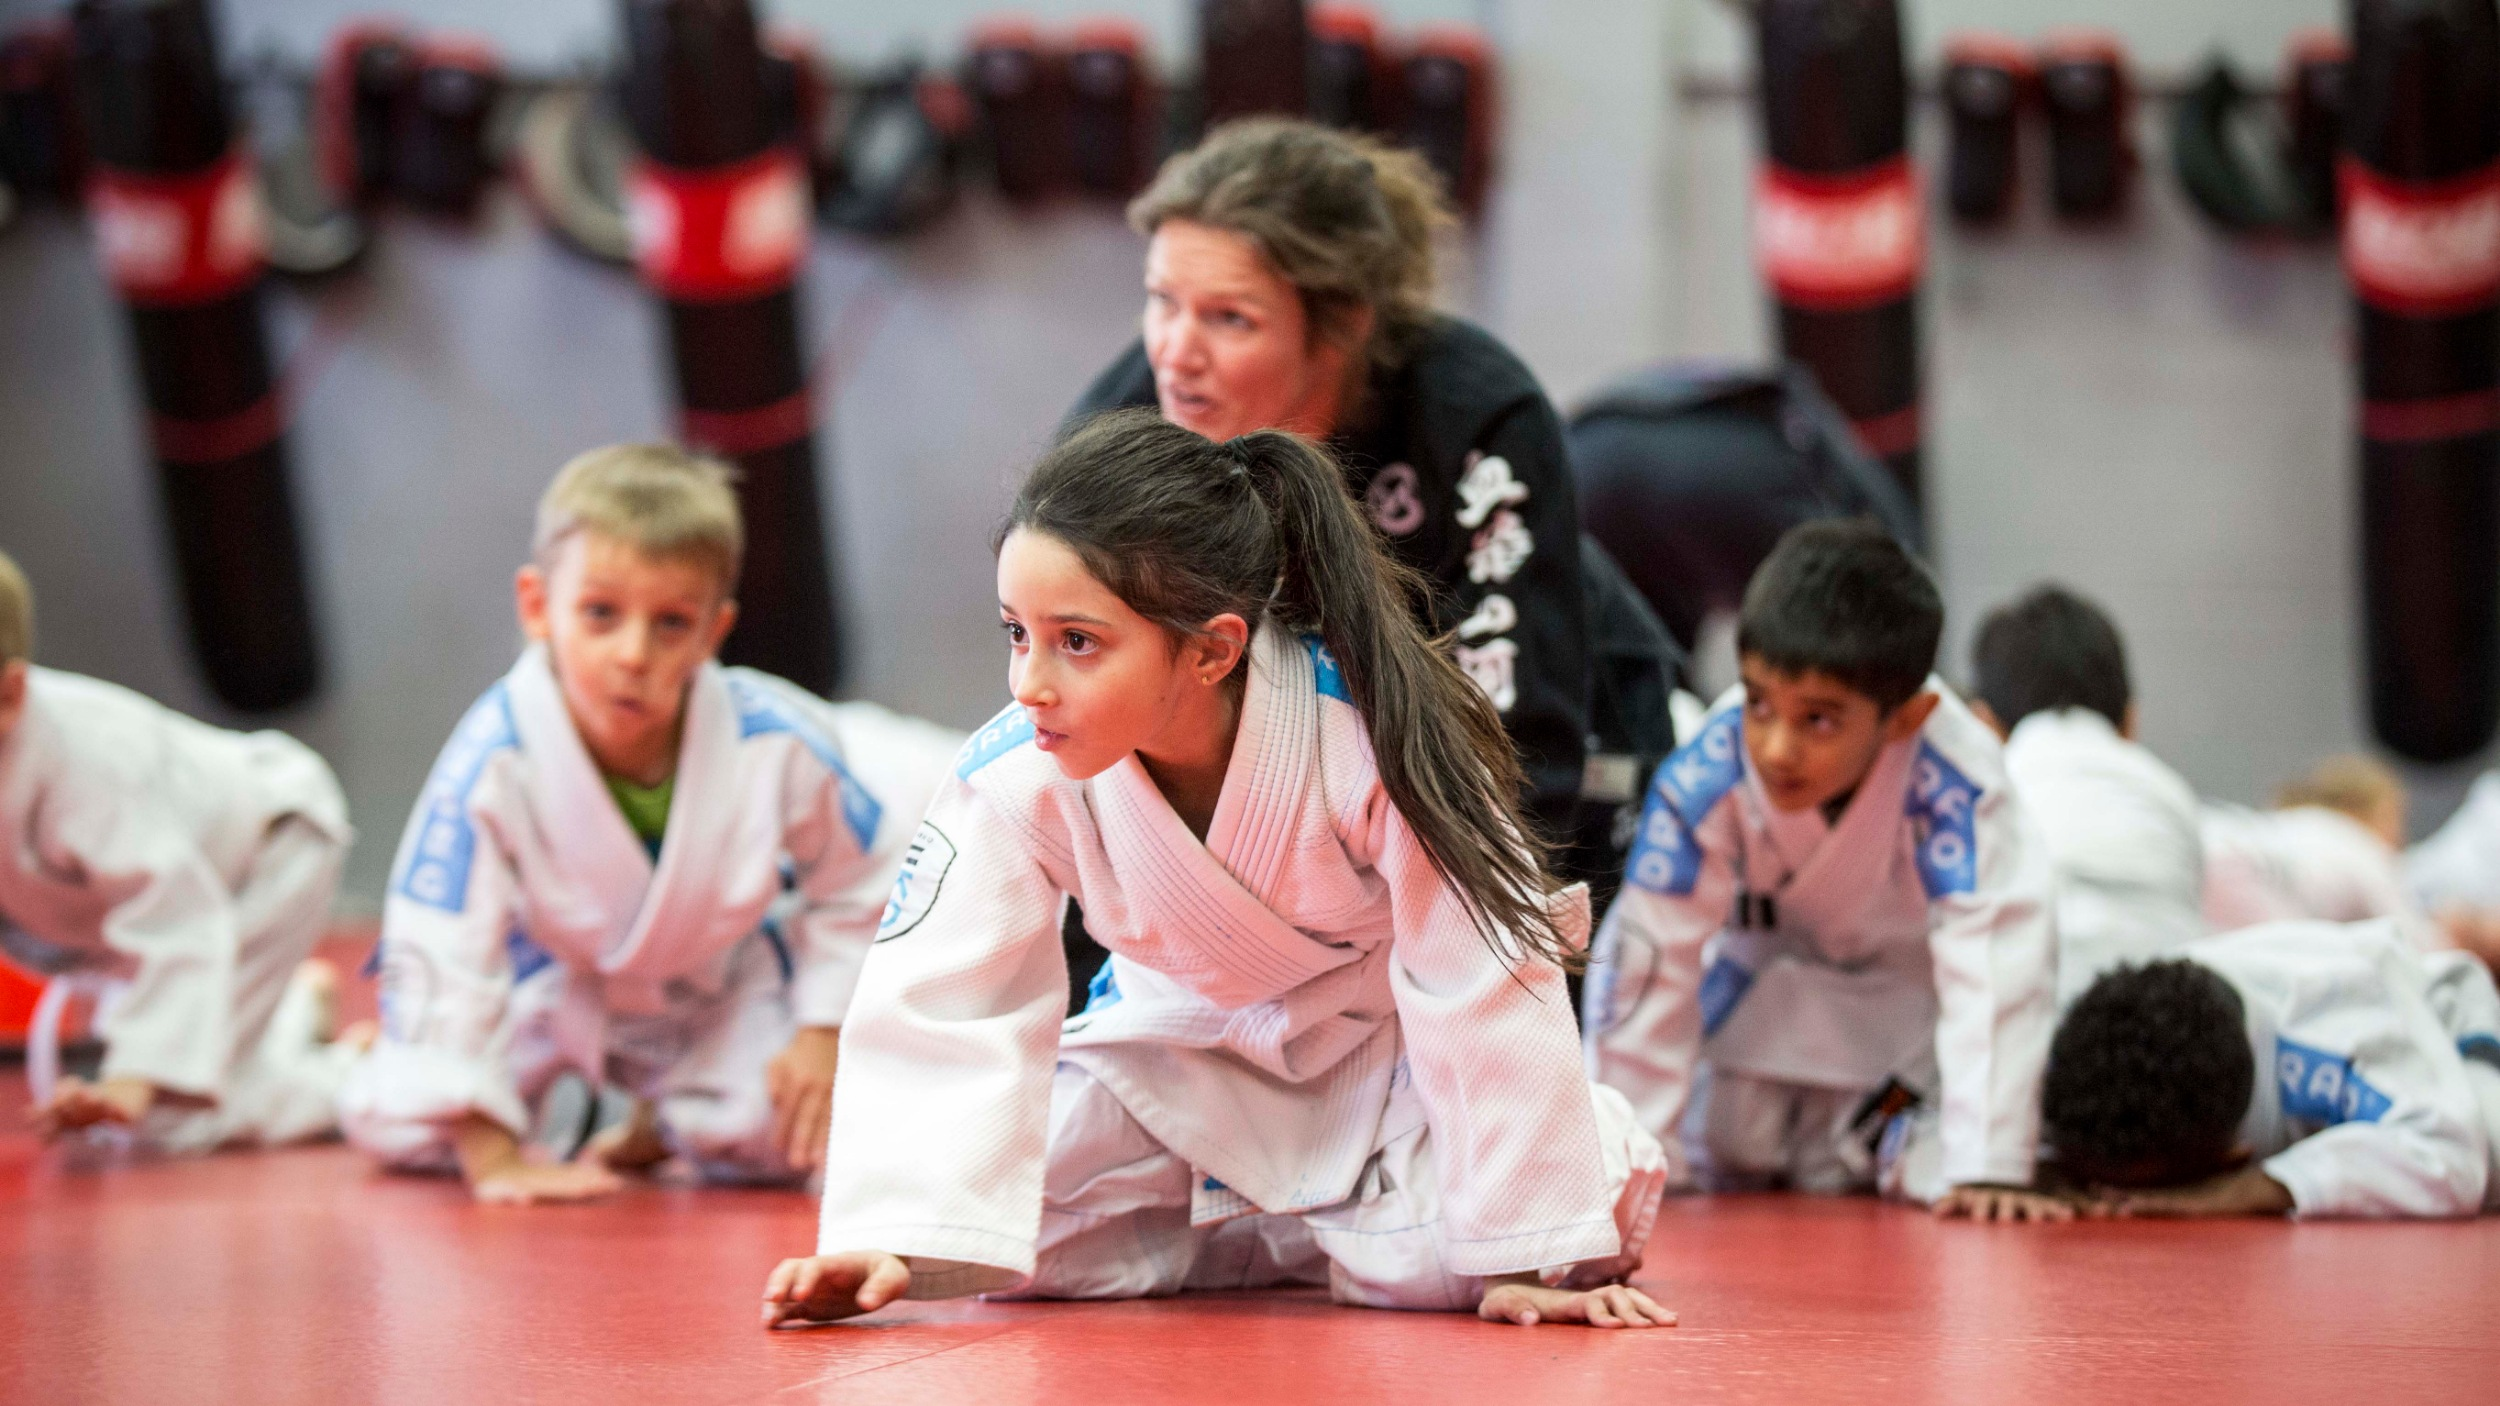 Kids Martial Arts: Warm Up Their Bodies, Energize Their Minds